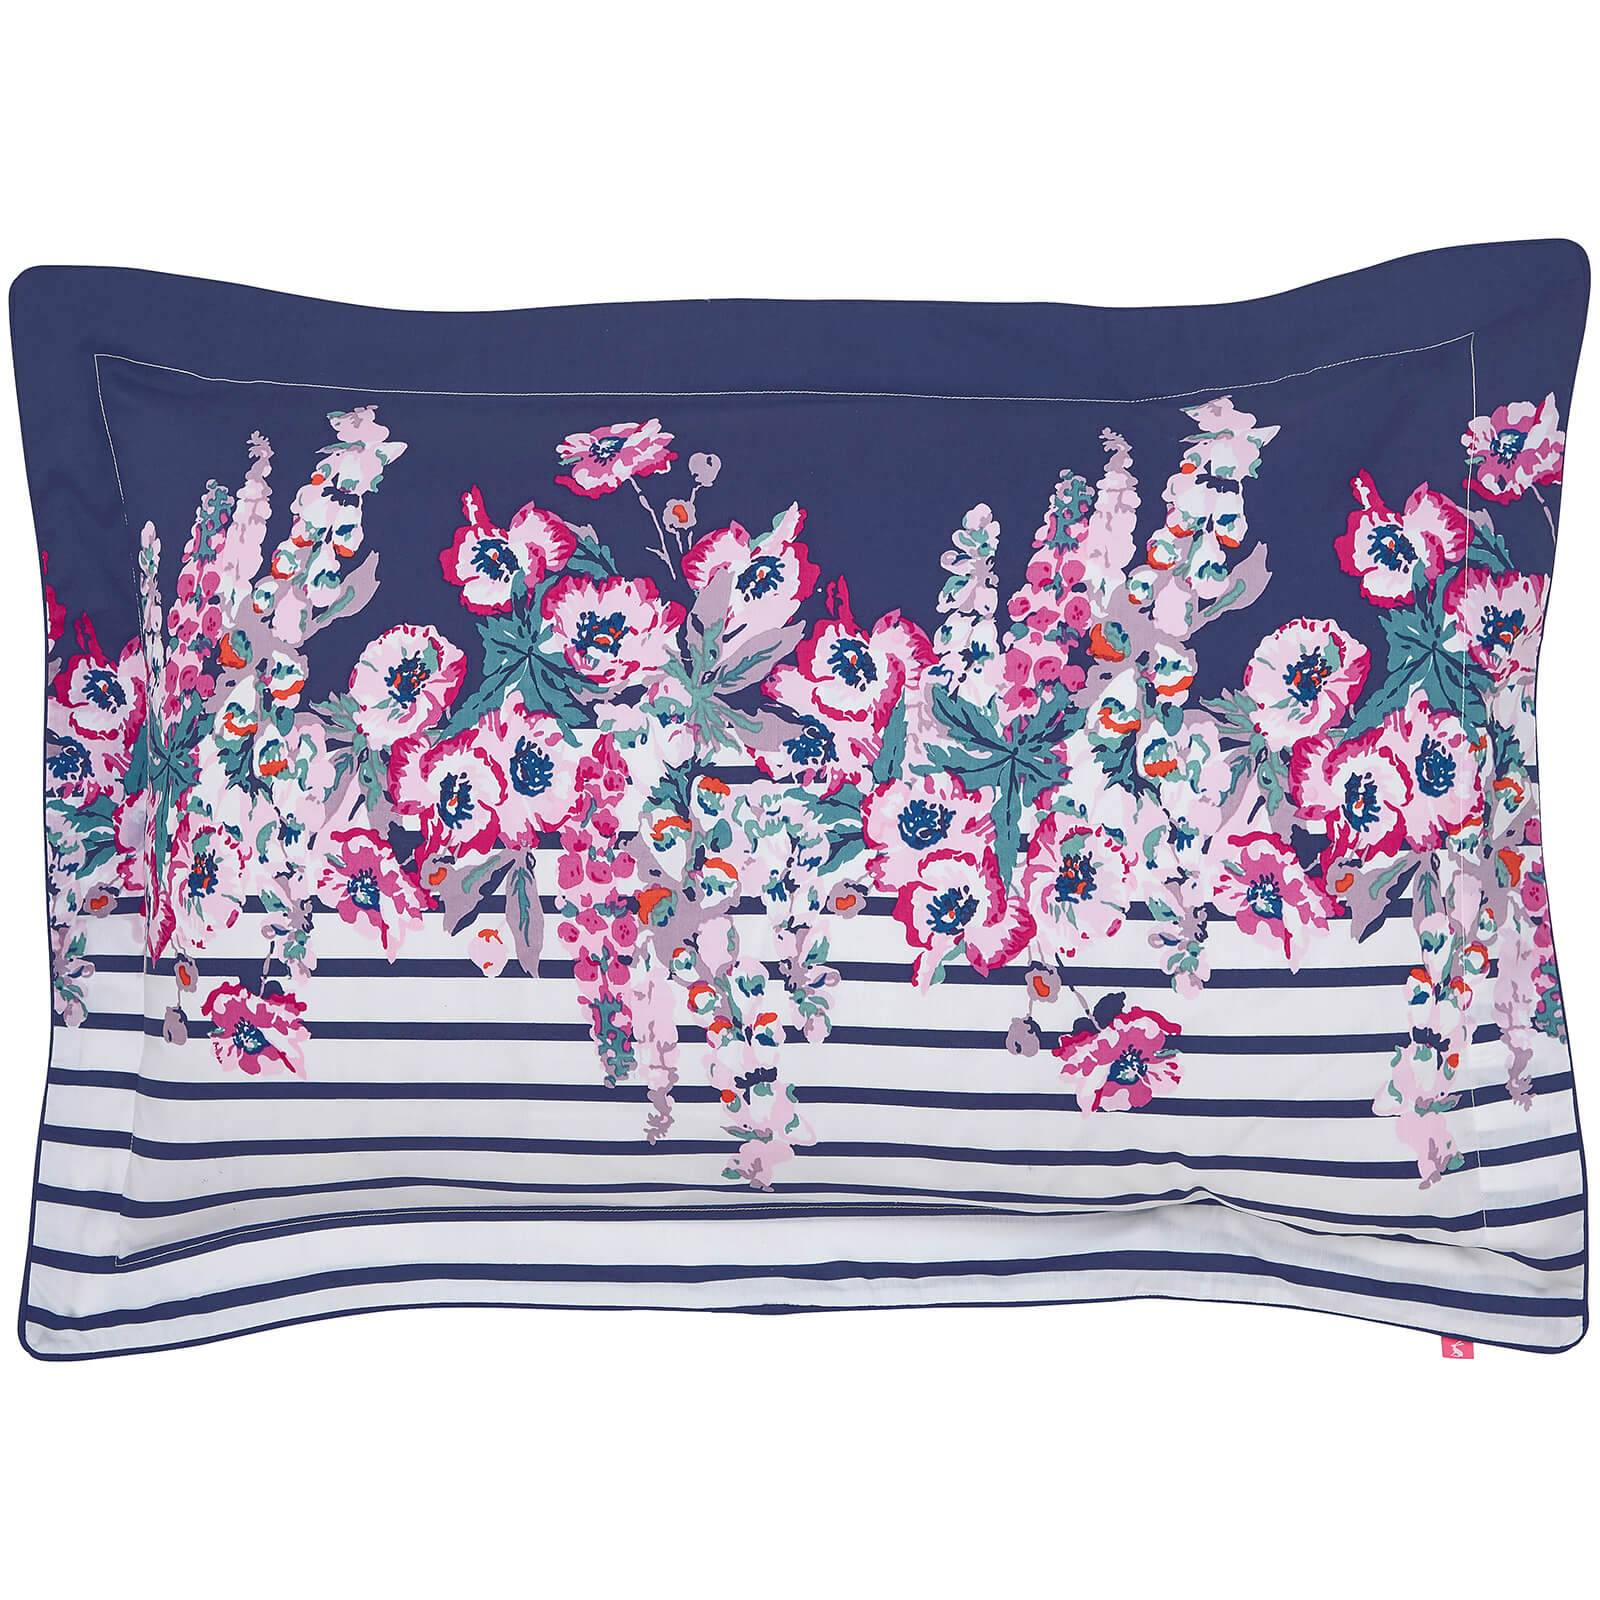 Joules Cottage Garden Border Stripe Oxford Pillowcase - Navy